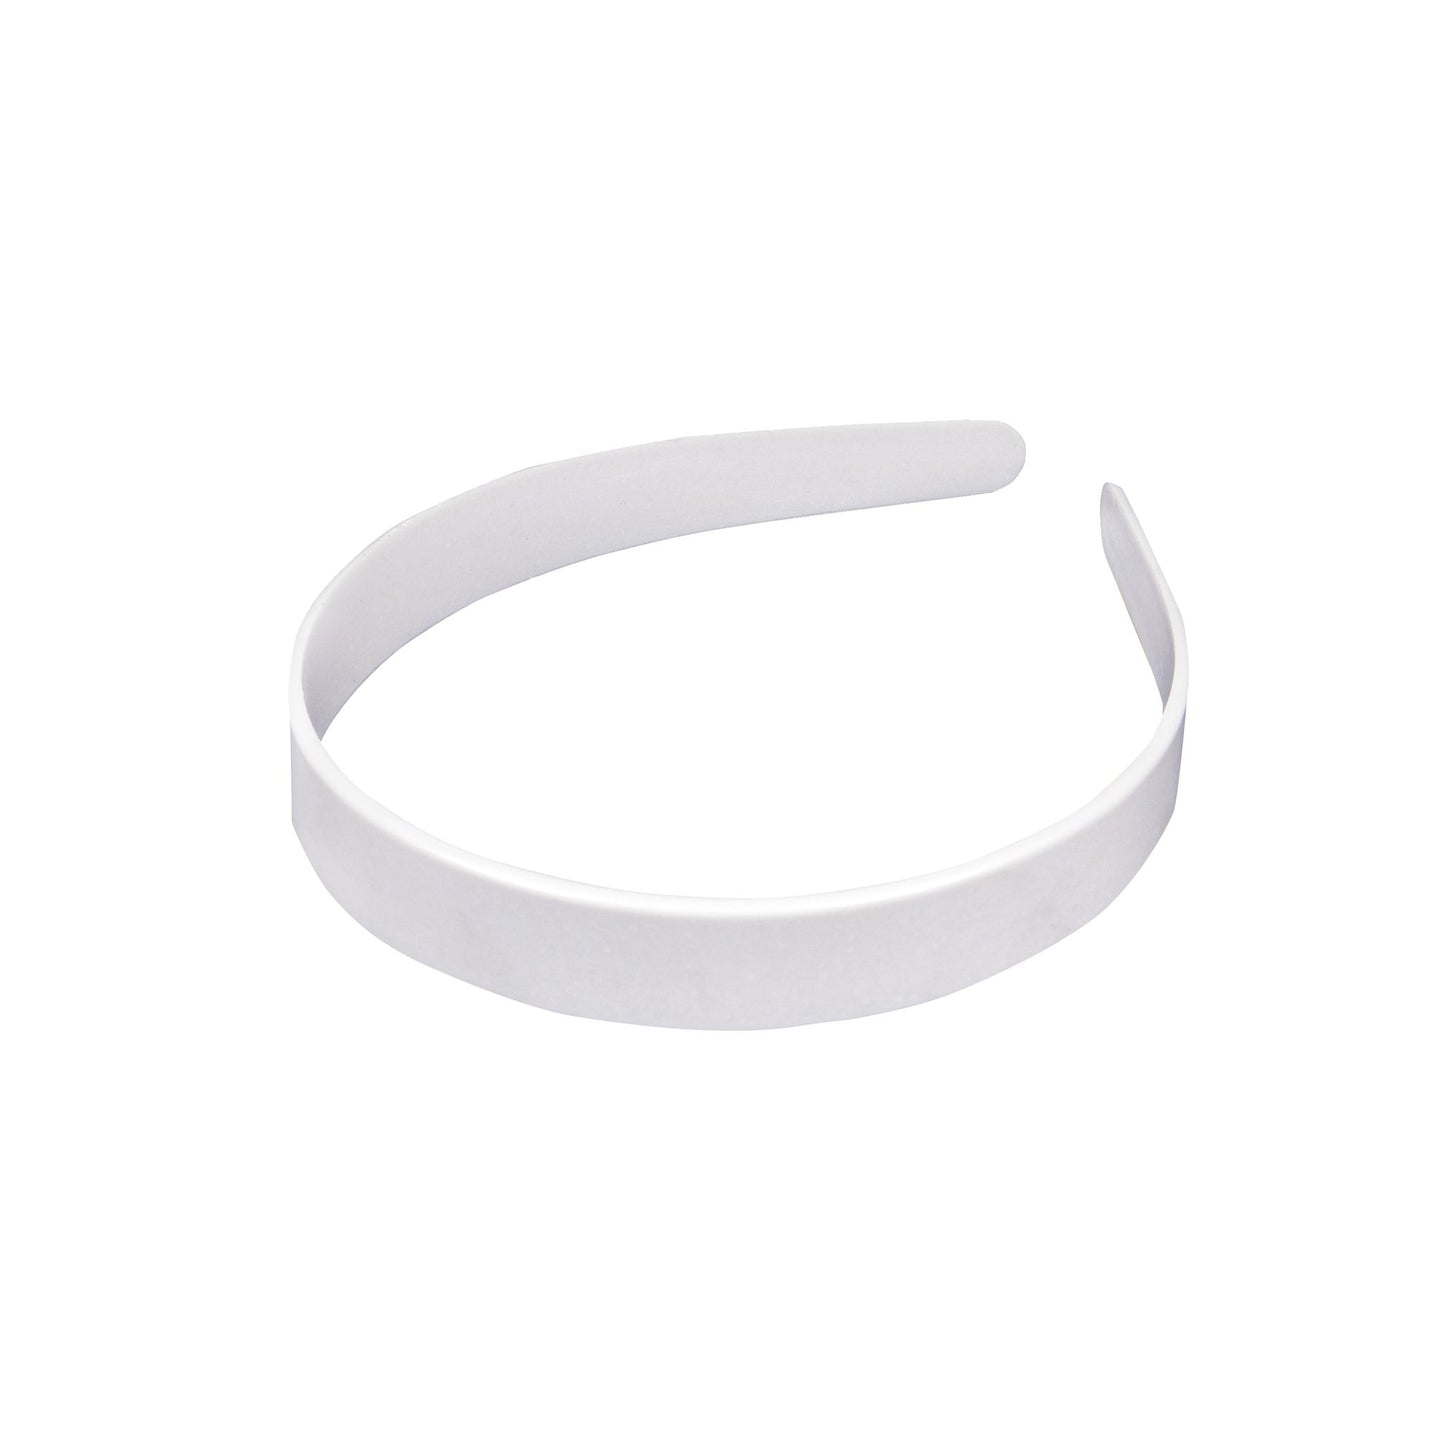 Plastic uncovered headband 18mm wide for fascinators millinery hats HB022